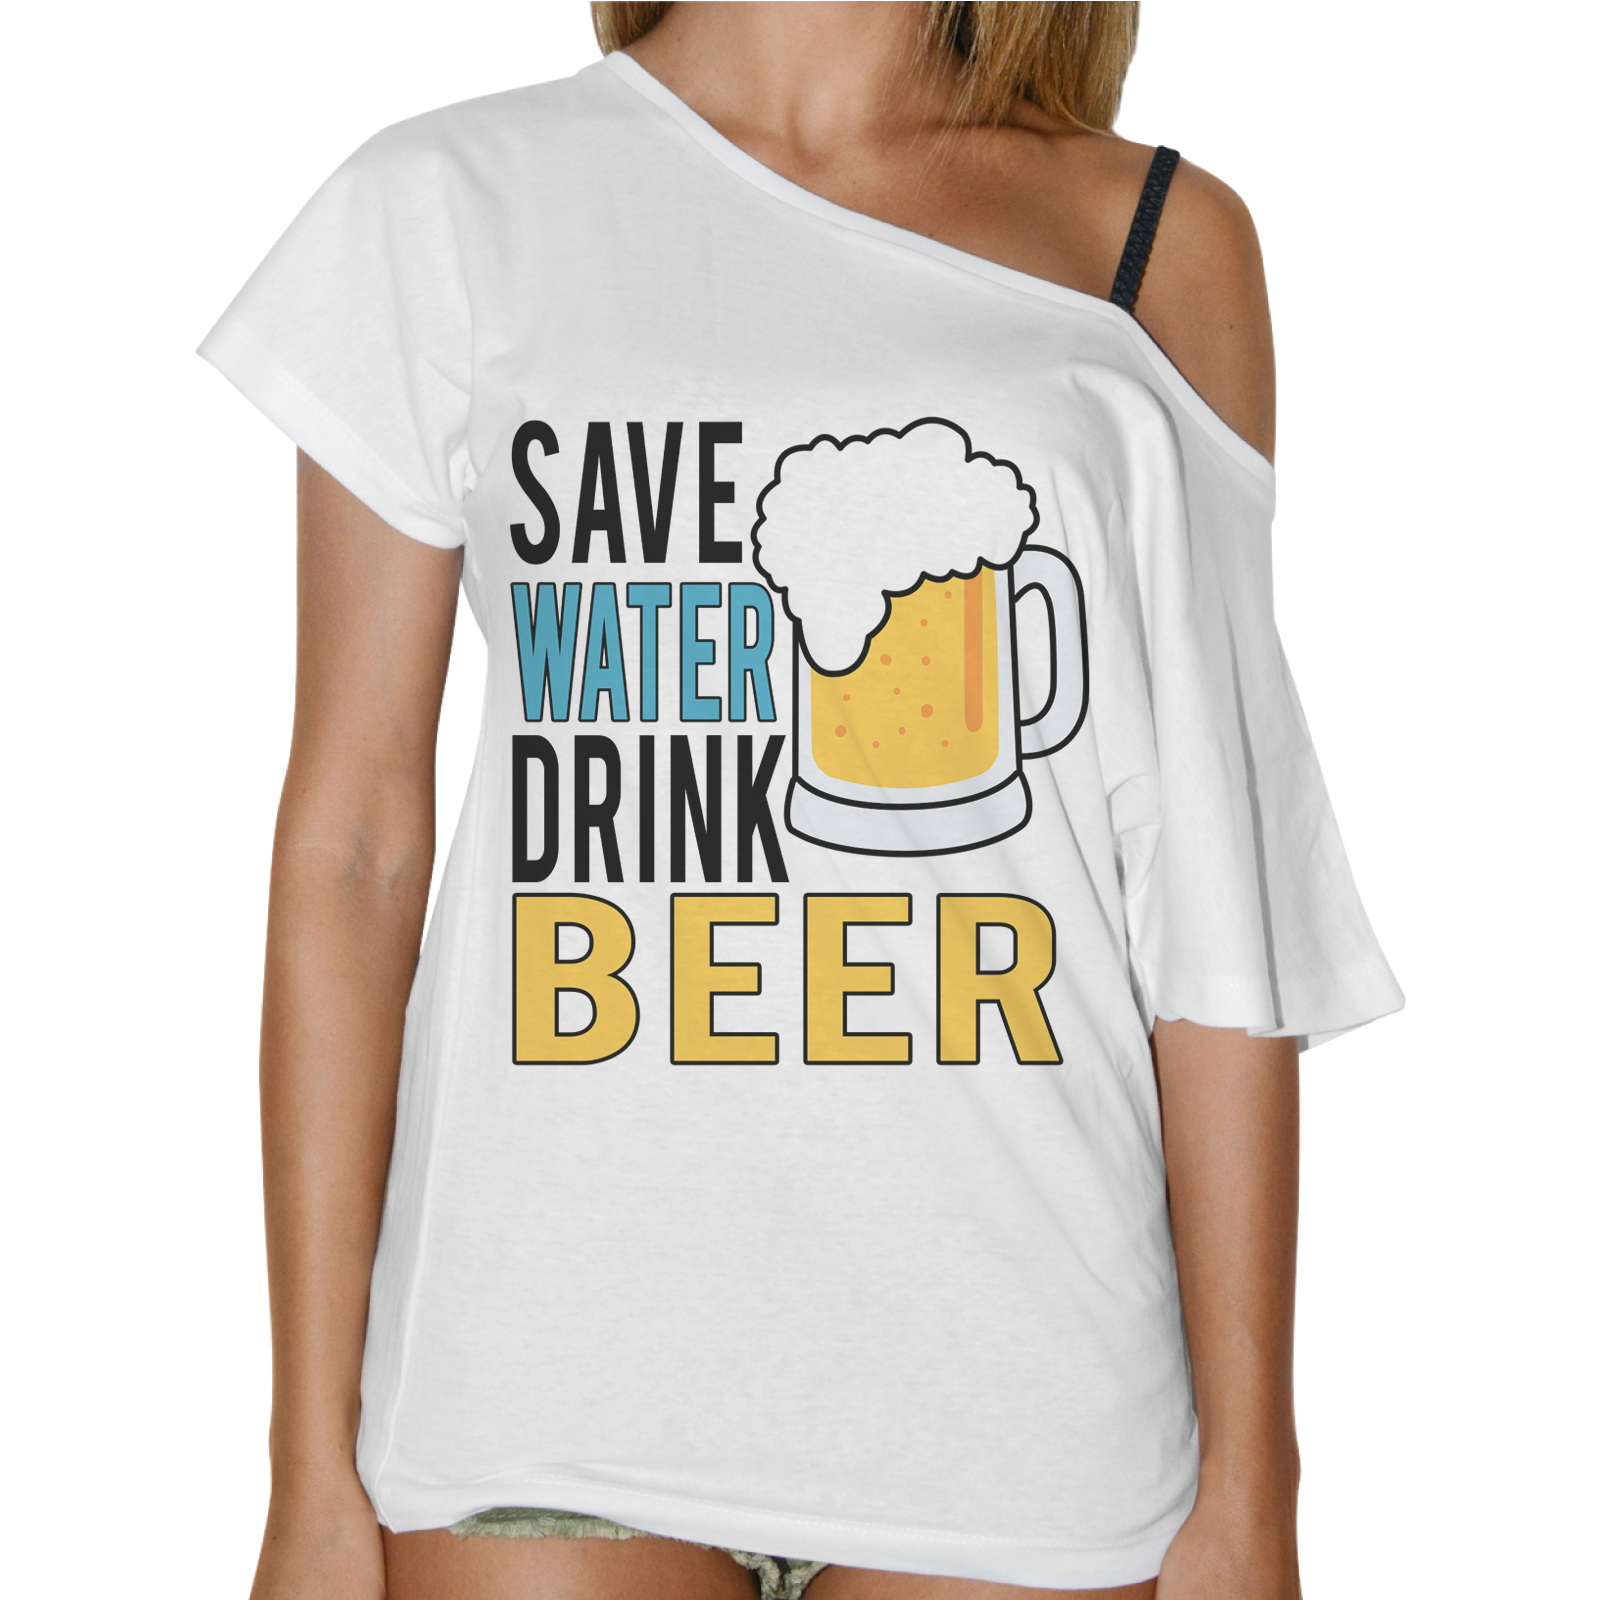 T-Shirt Donna Collo Barca SAVE WATER DRINK BEER